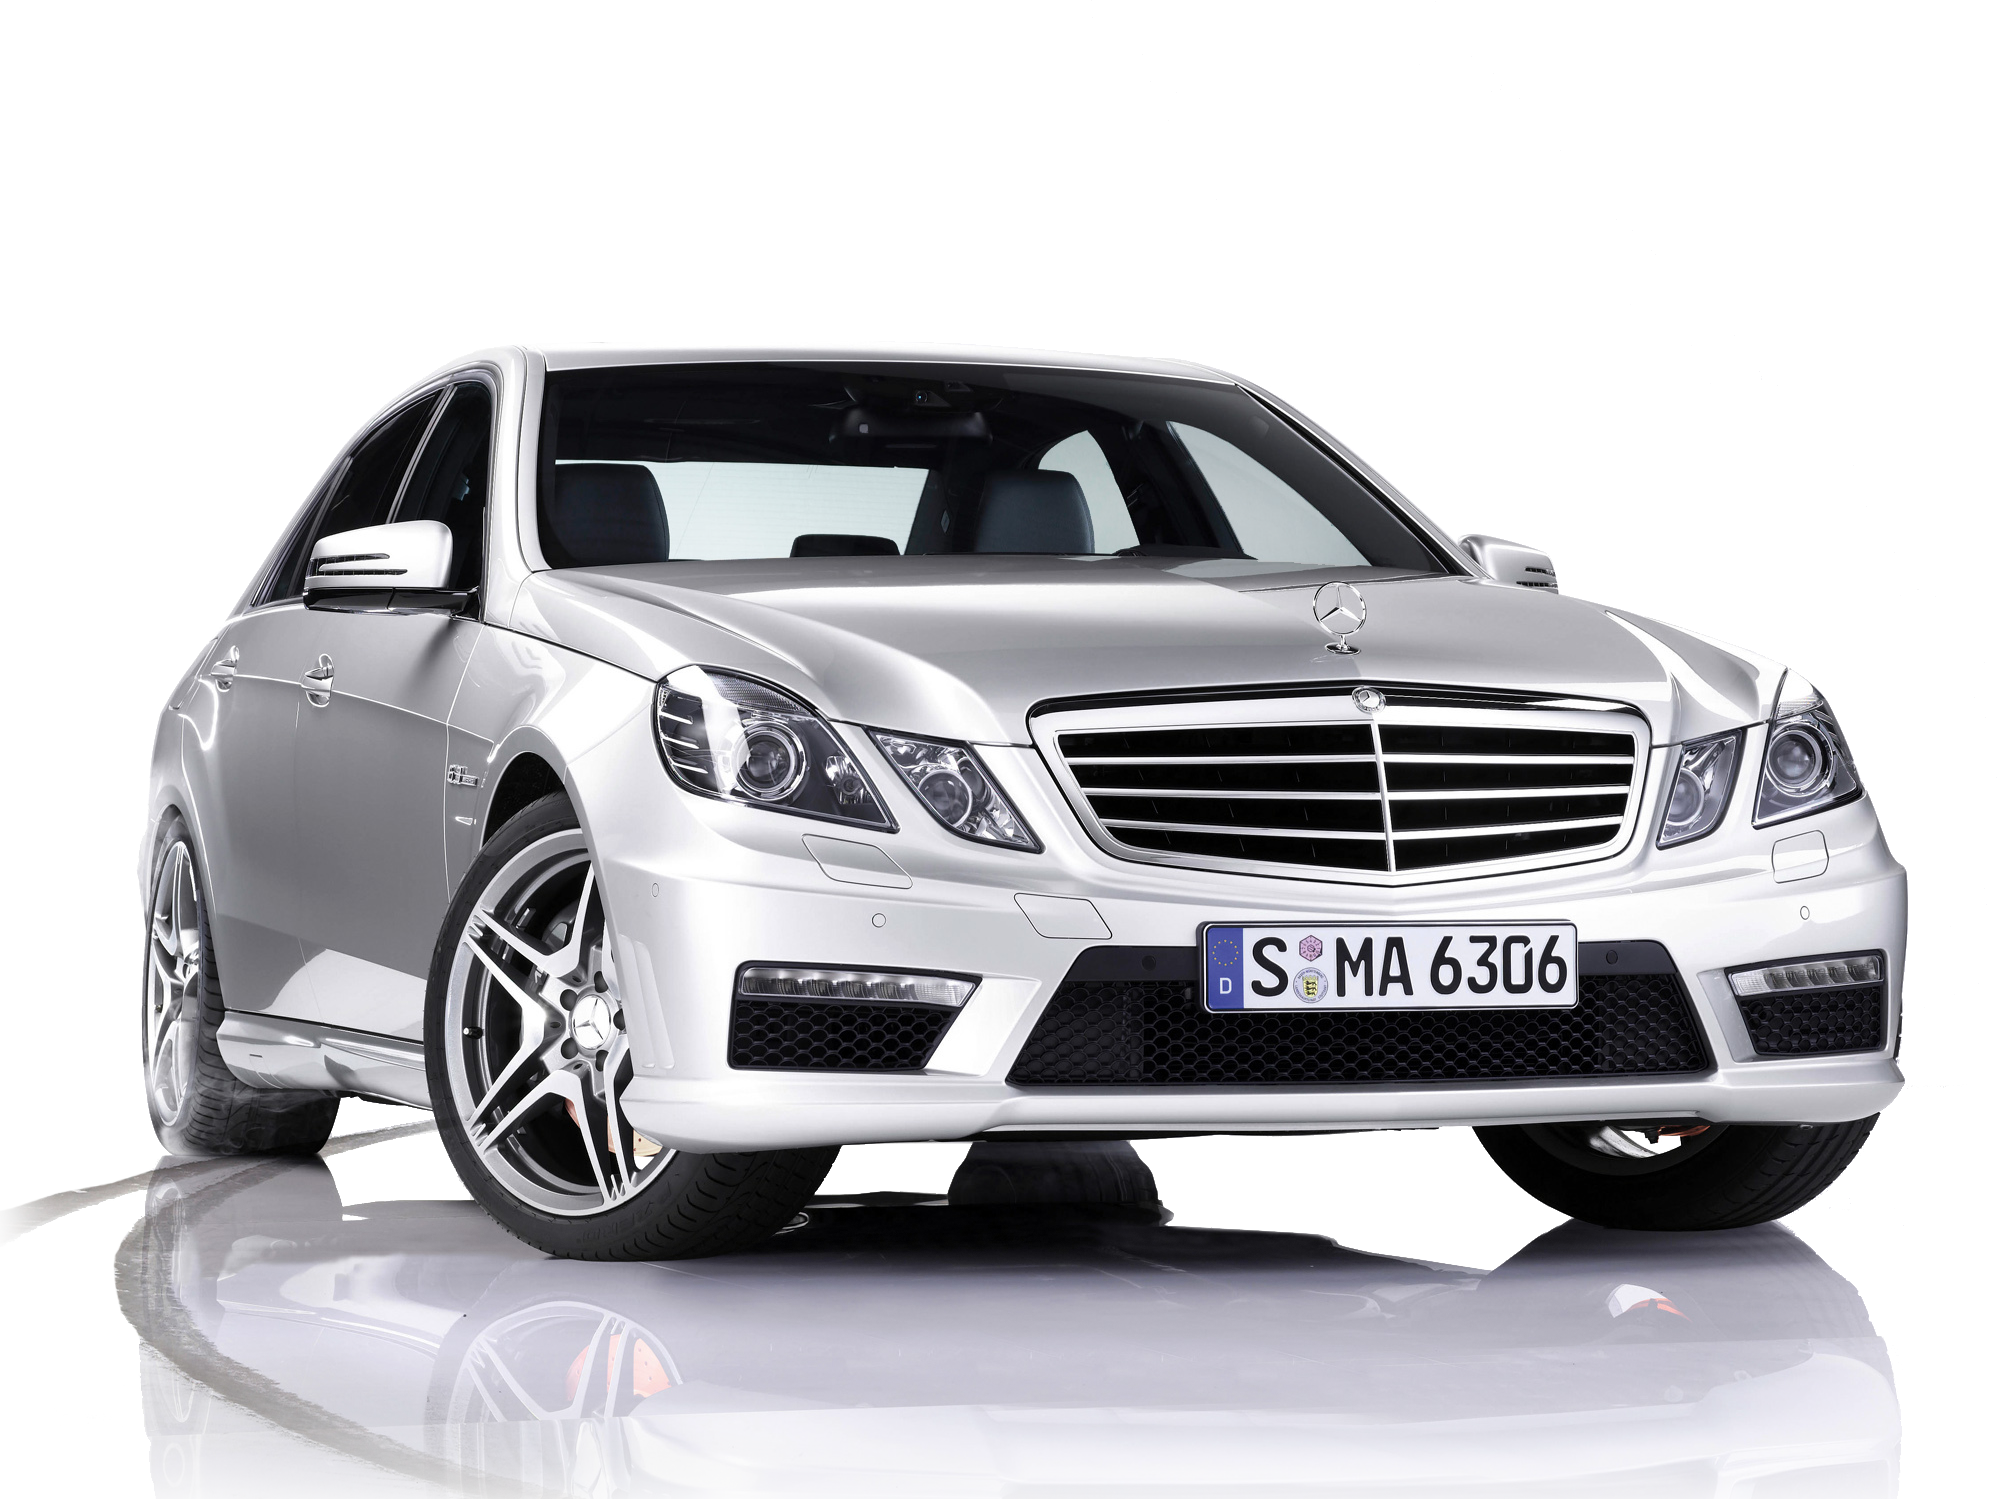 Download mercedes benz free png image hq png image for Mercedes benz parts catalog online free download